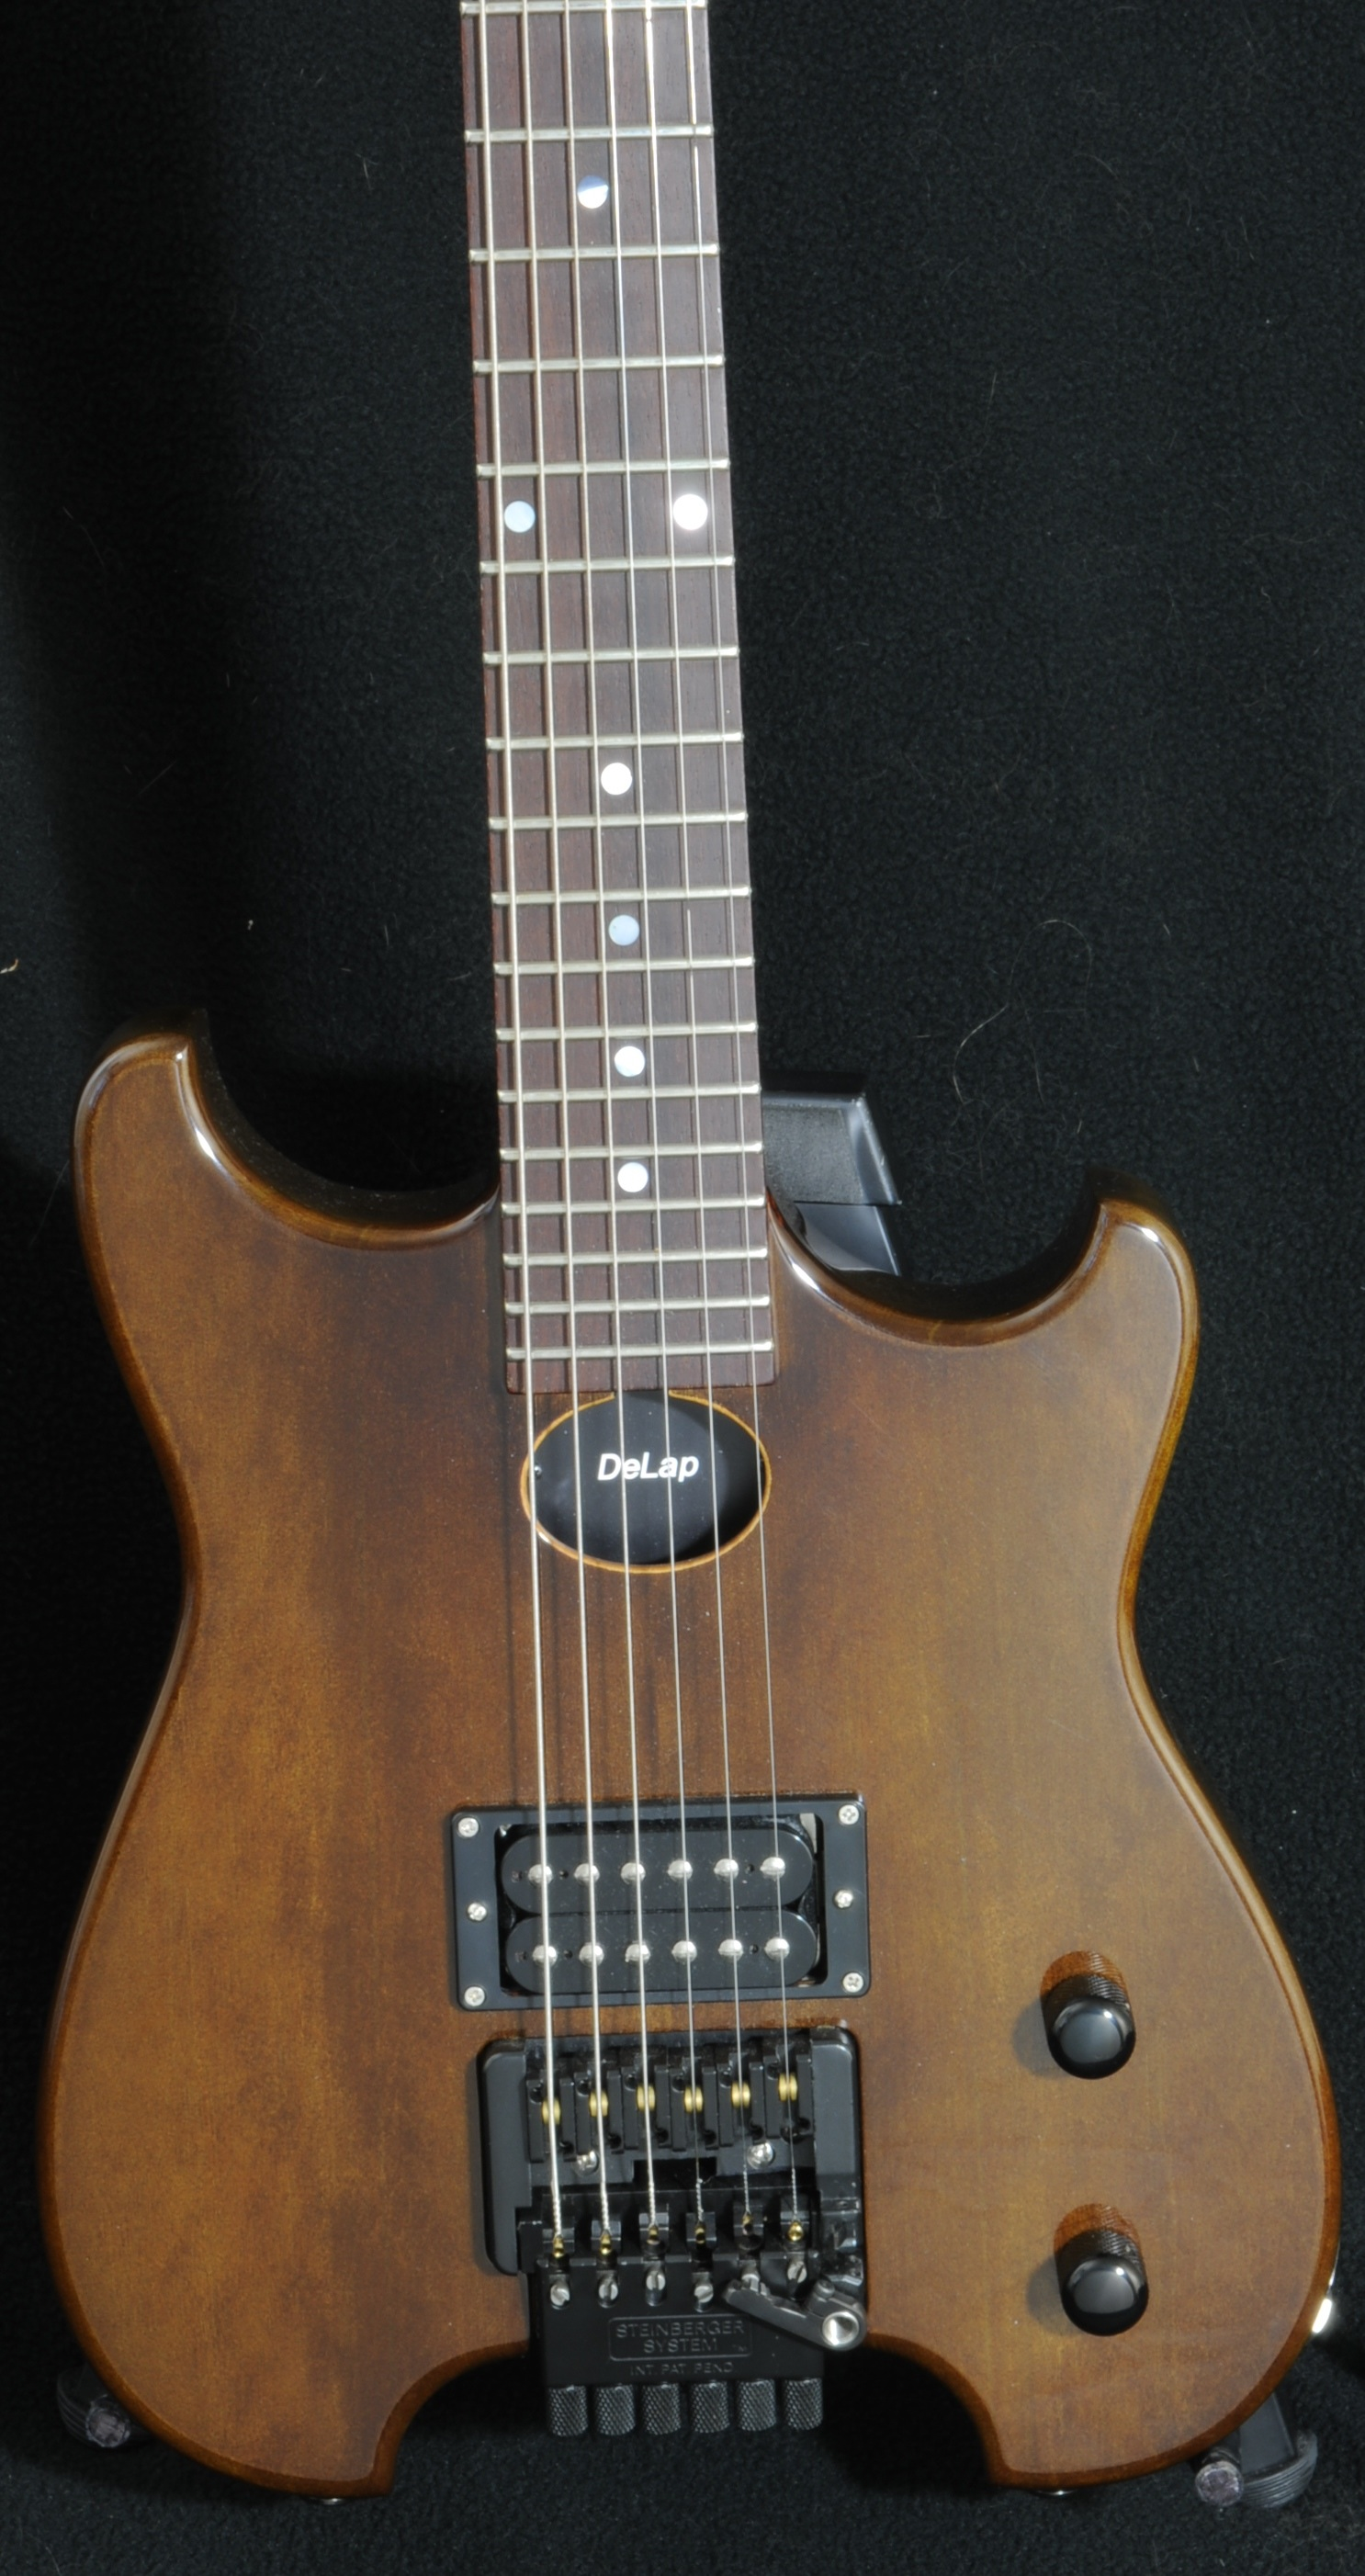 2015 Delap Guitar – Custom Ordered